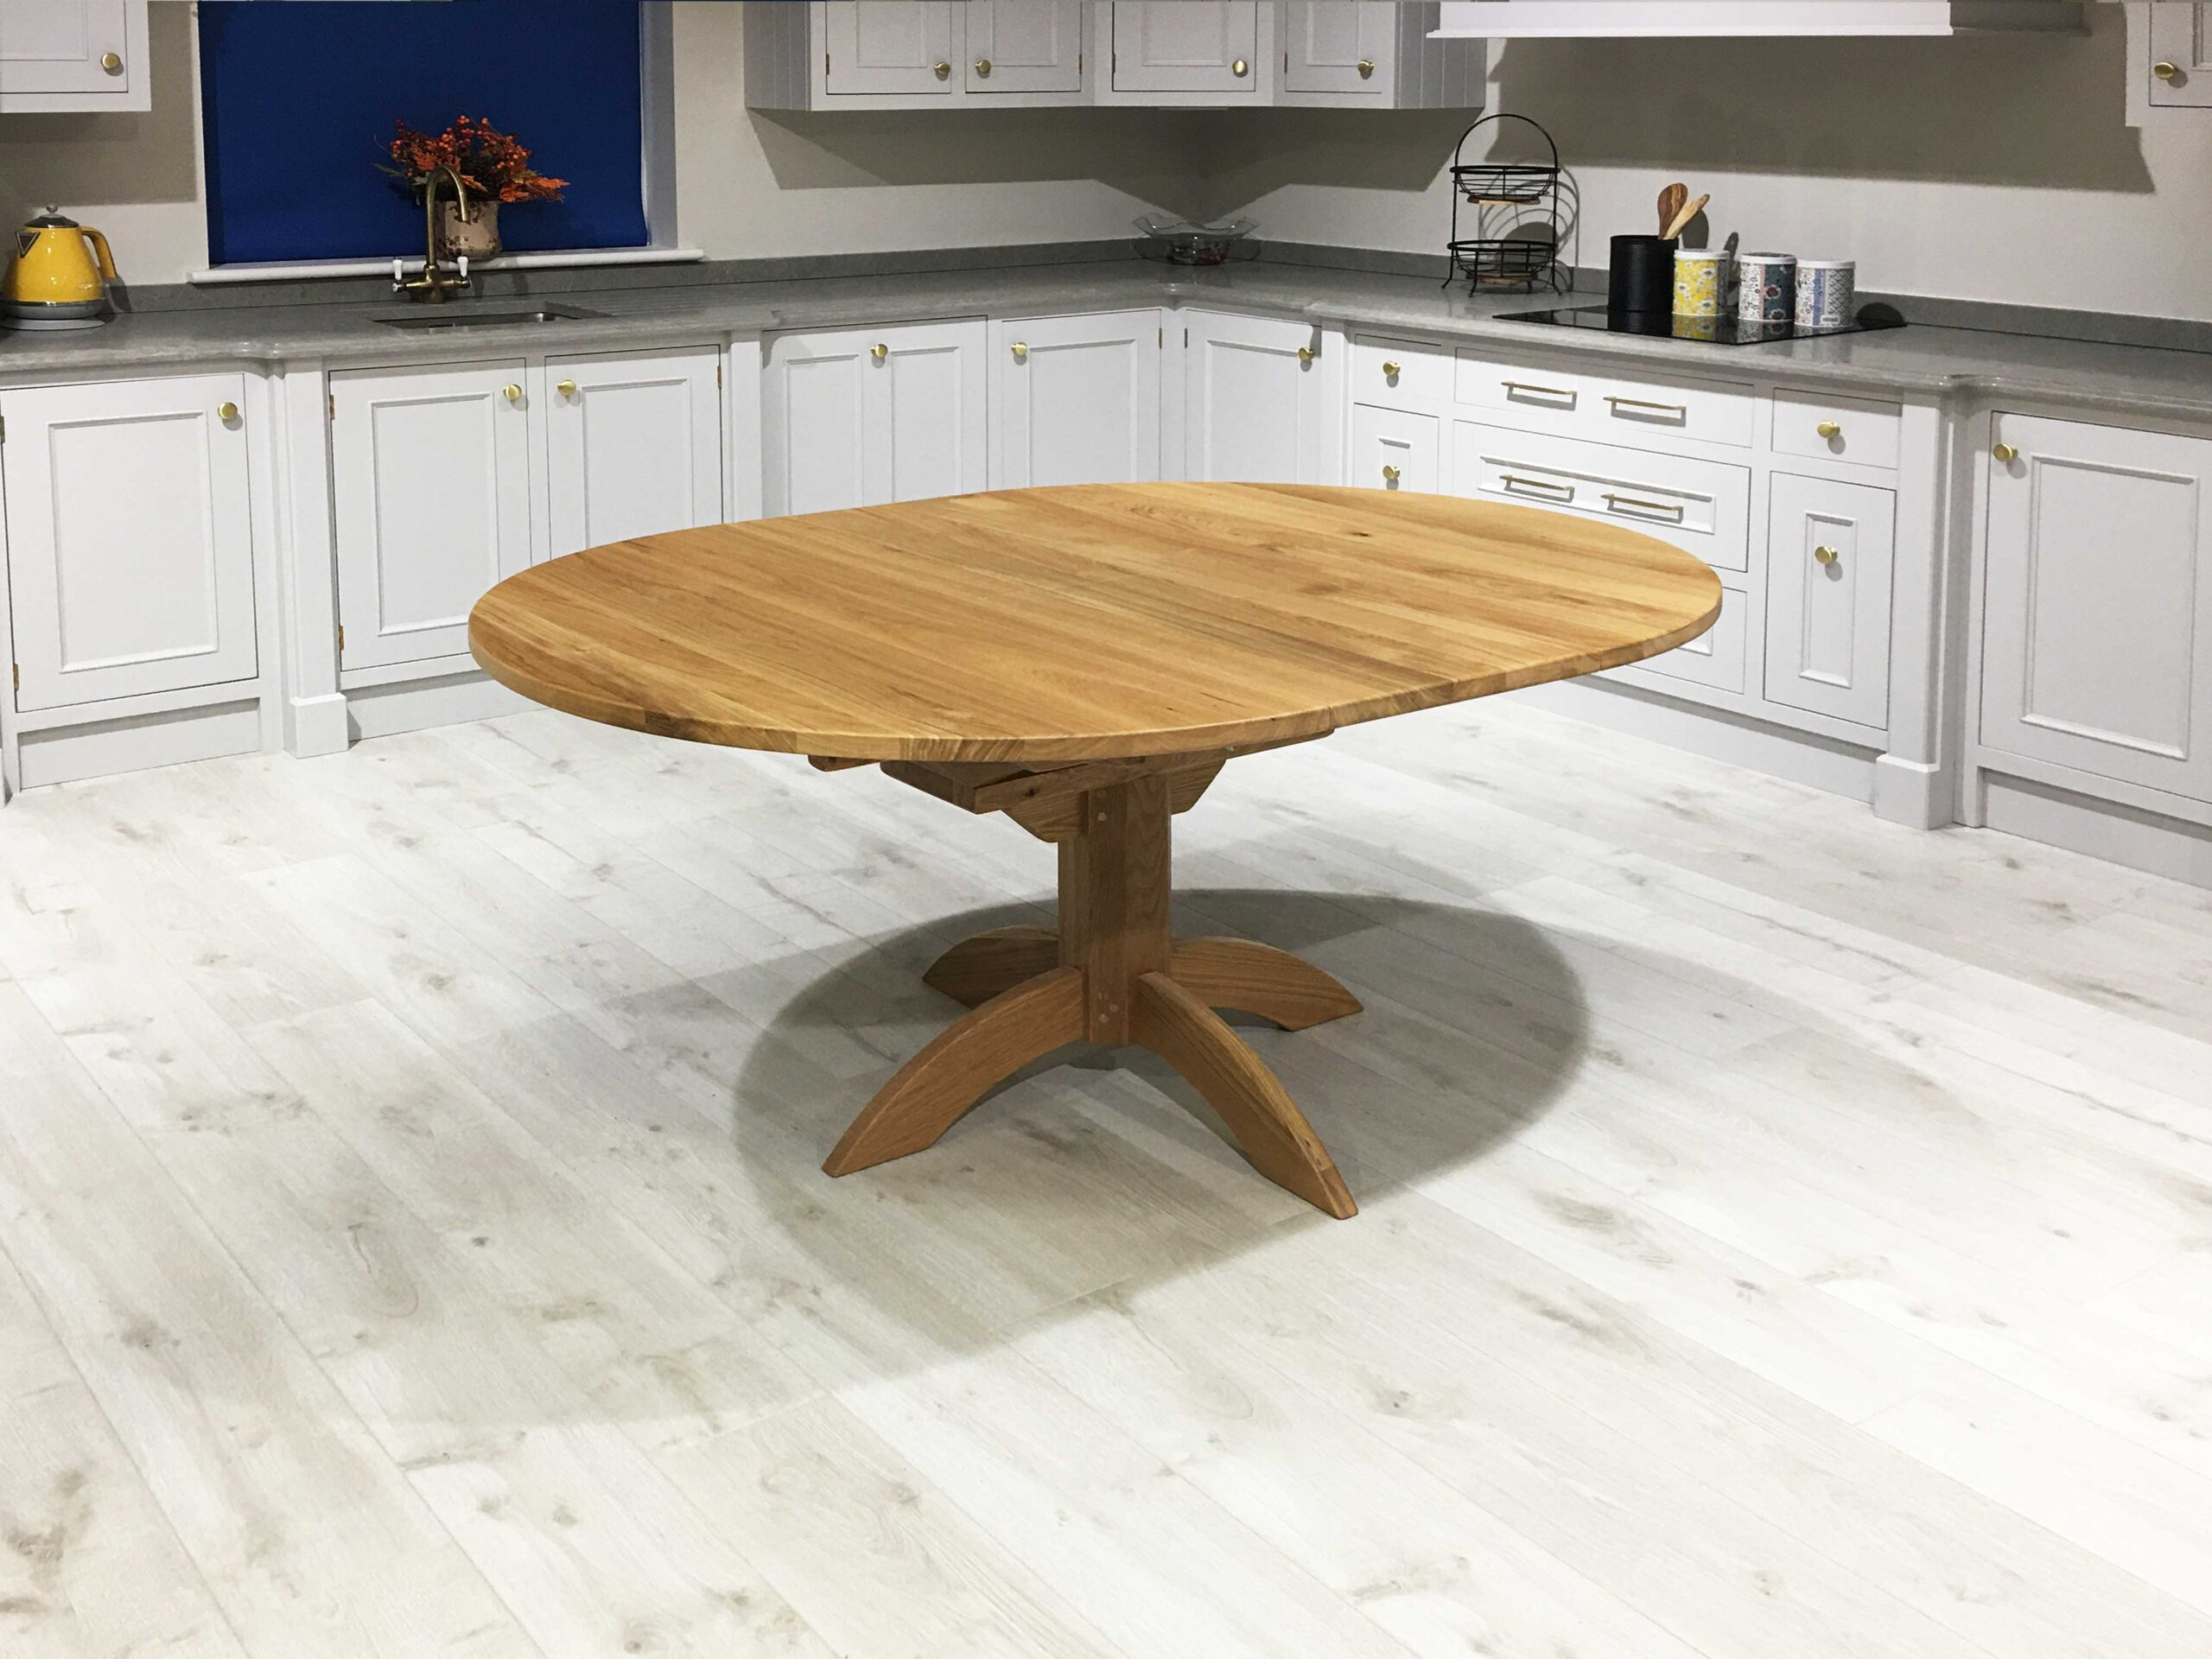 Oak-Round-Flip-Top-Single-Pedestal-Table-1200-x-1200-to-1600-x-1200